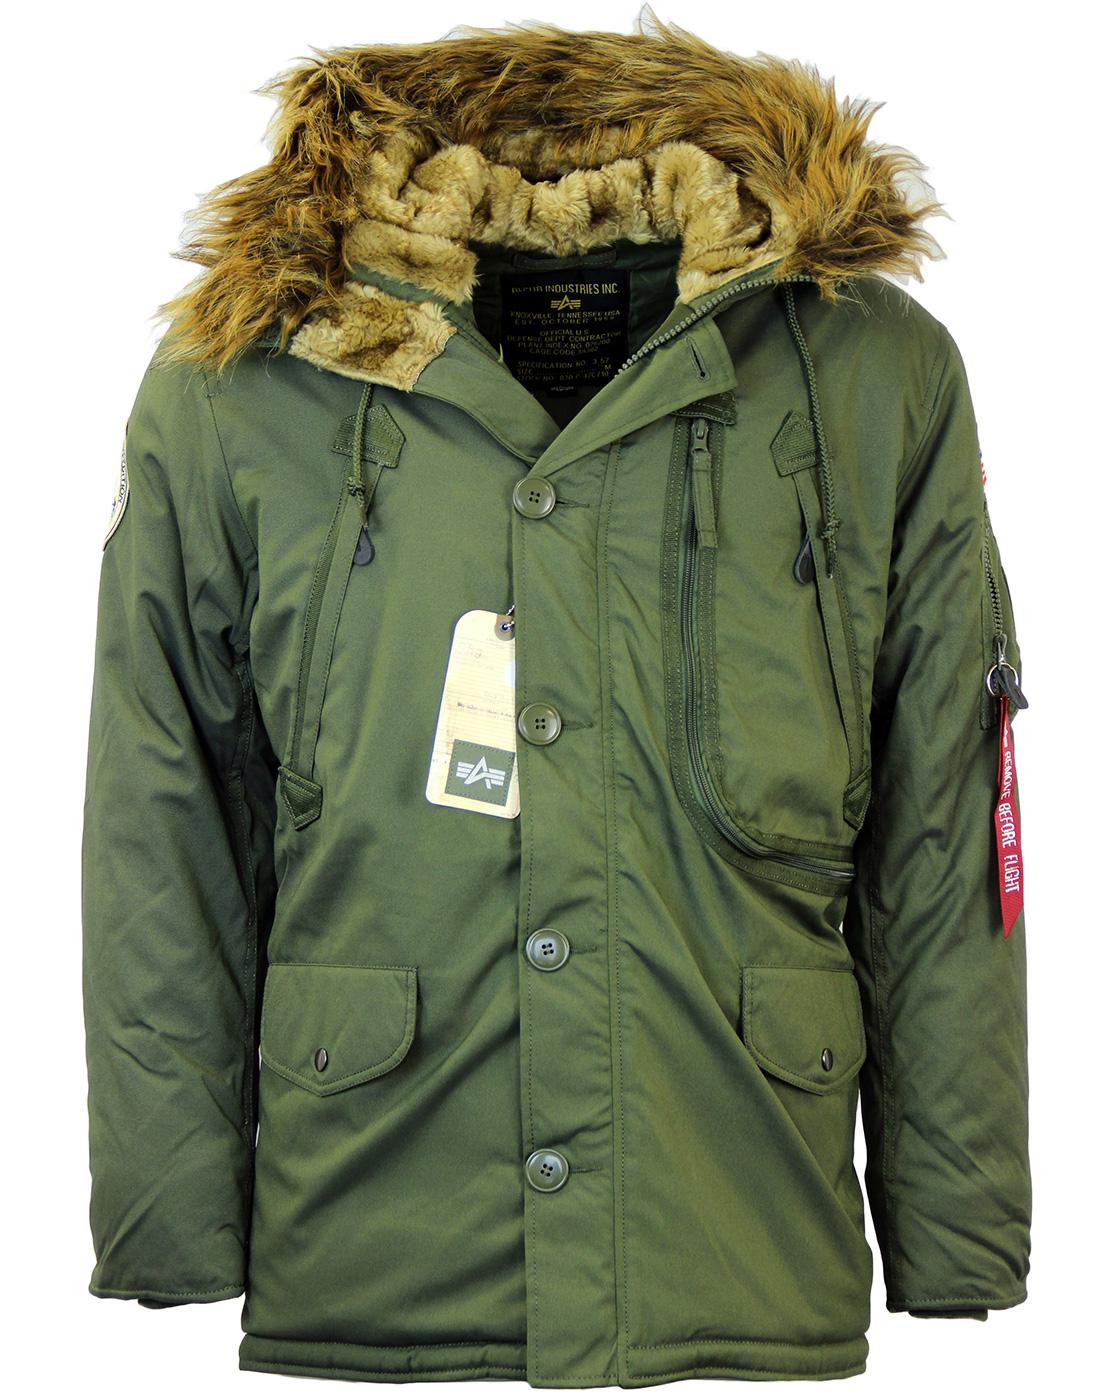 Polar ALPHA INDUSTRIES 60s Mod Parka w/ Patches DG